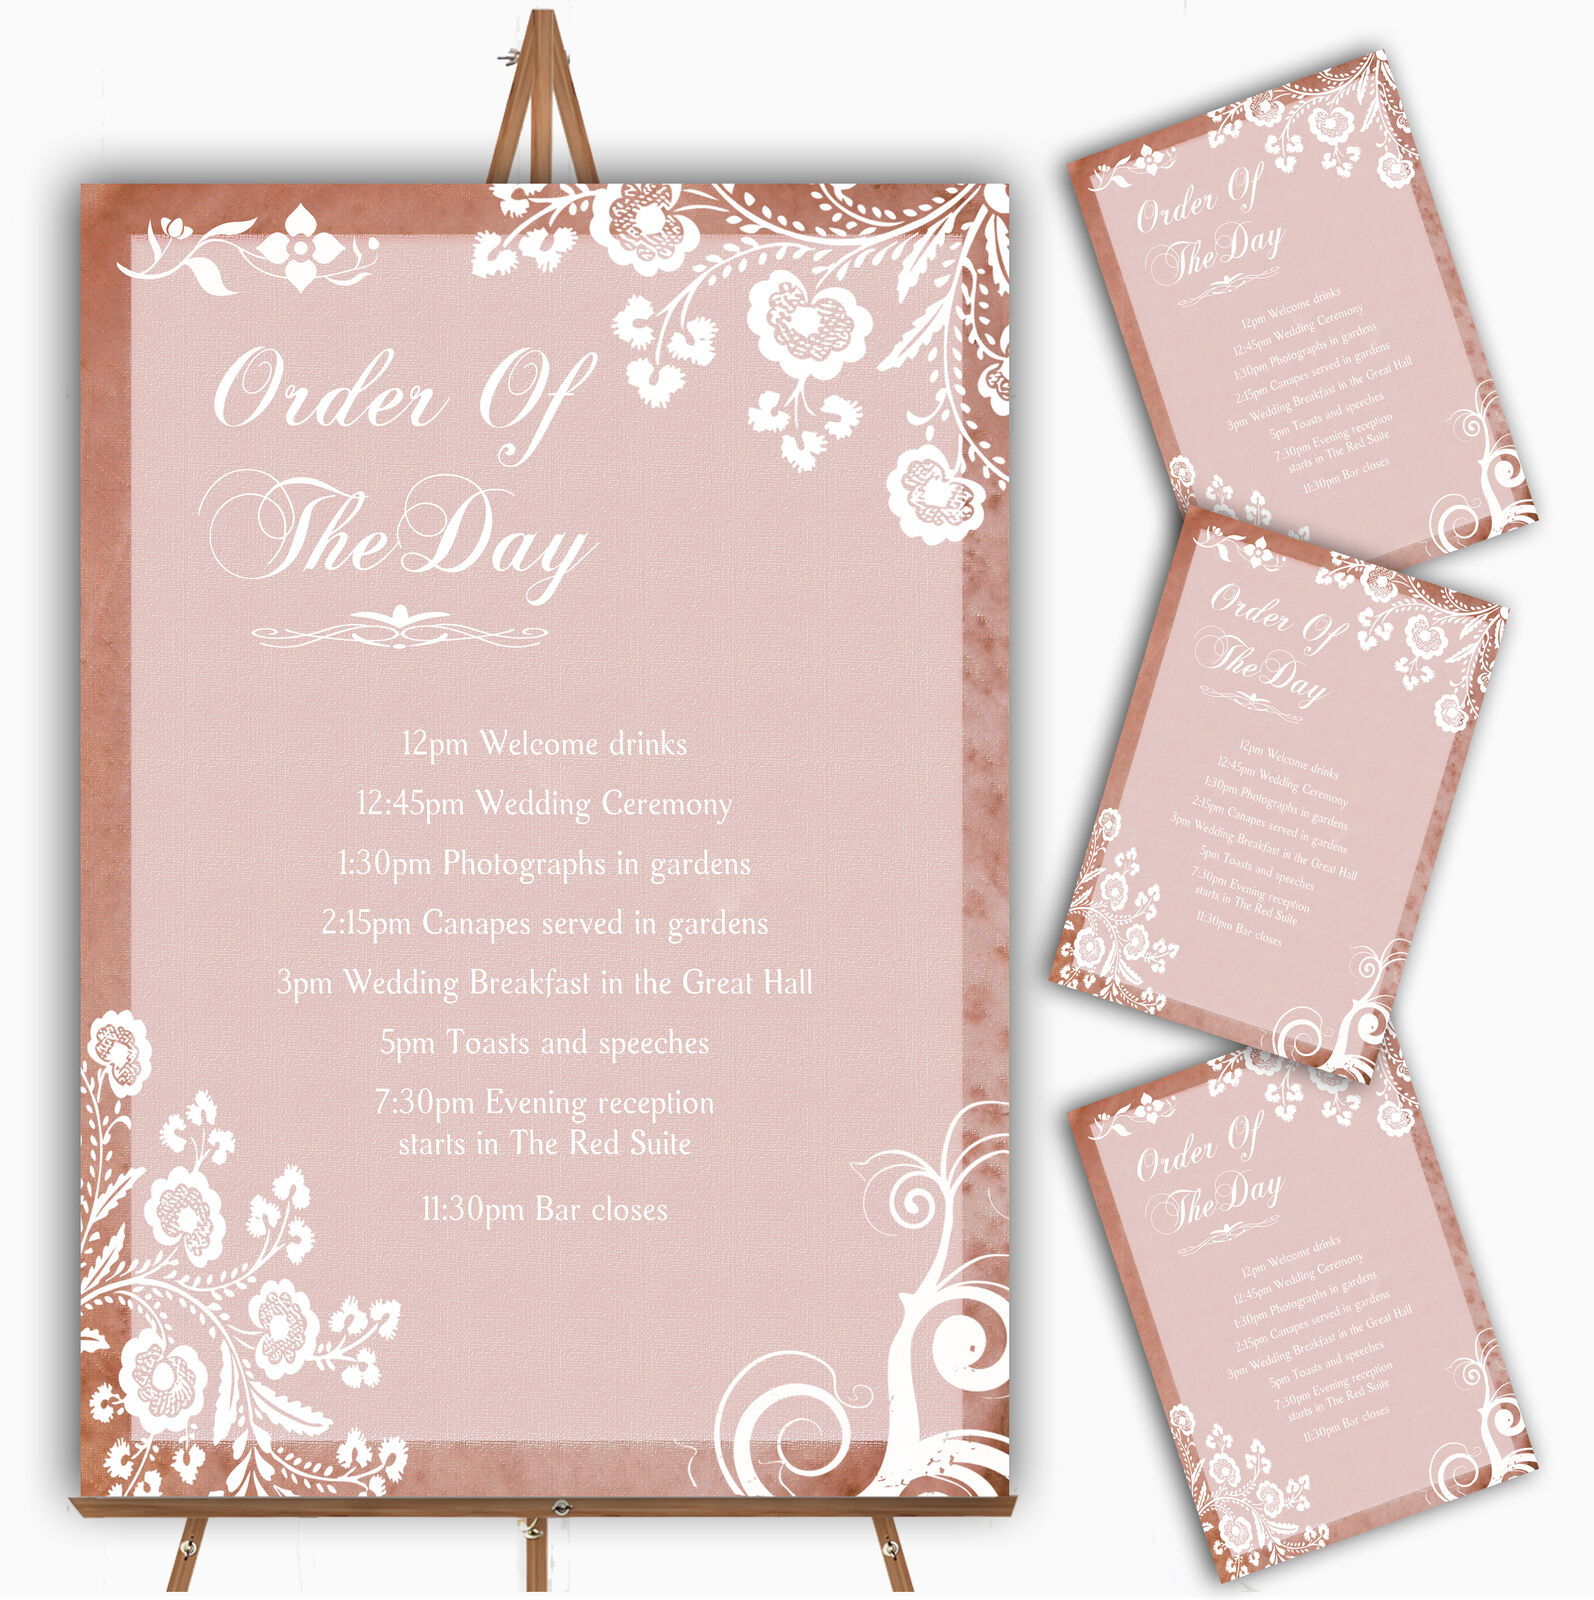 Rustic Blaush Lace Personalised Wedding Order Of The Day Cards & Signs